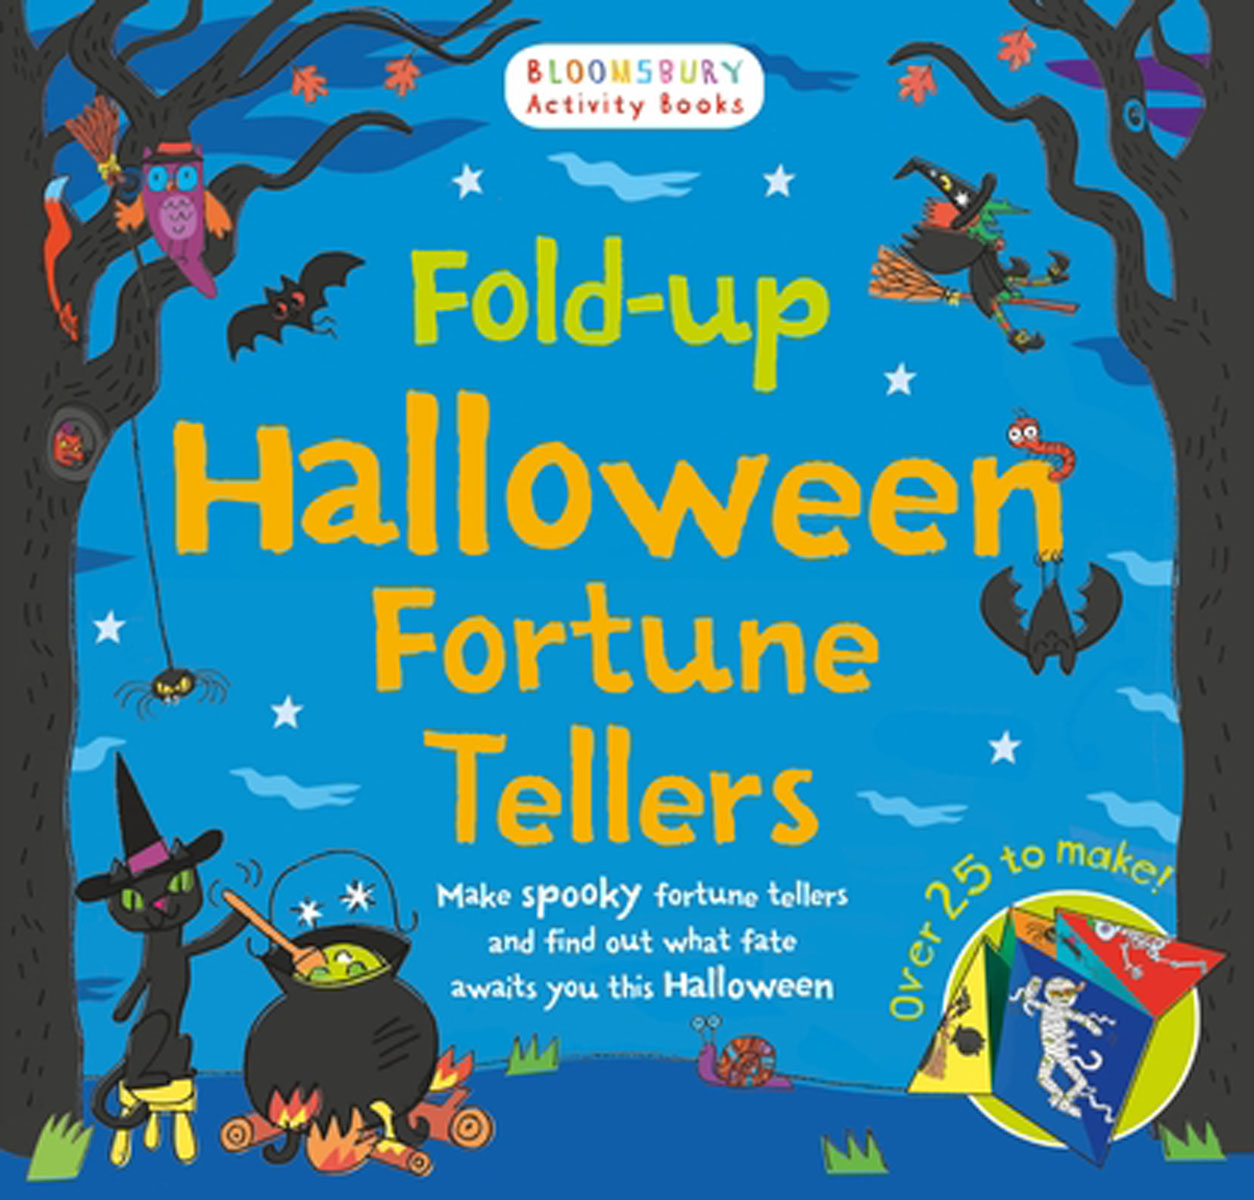 Fold-up Halloween Fortune Tellers where have you been